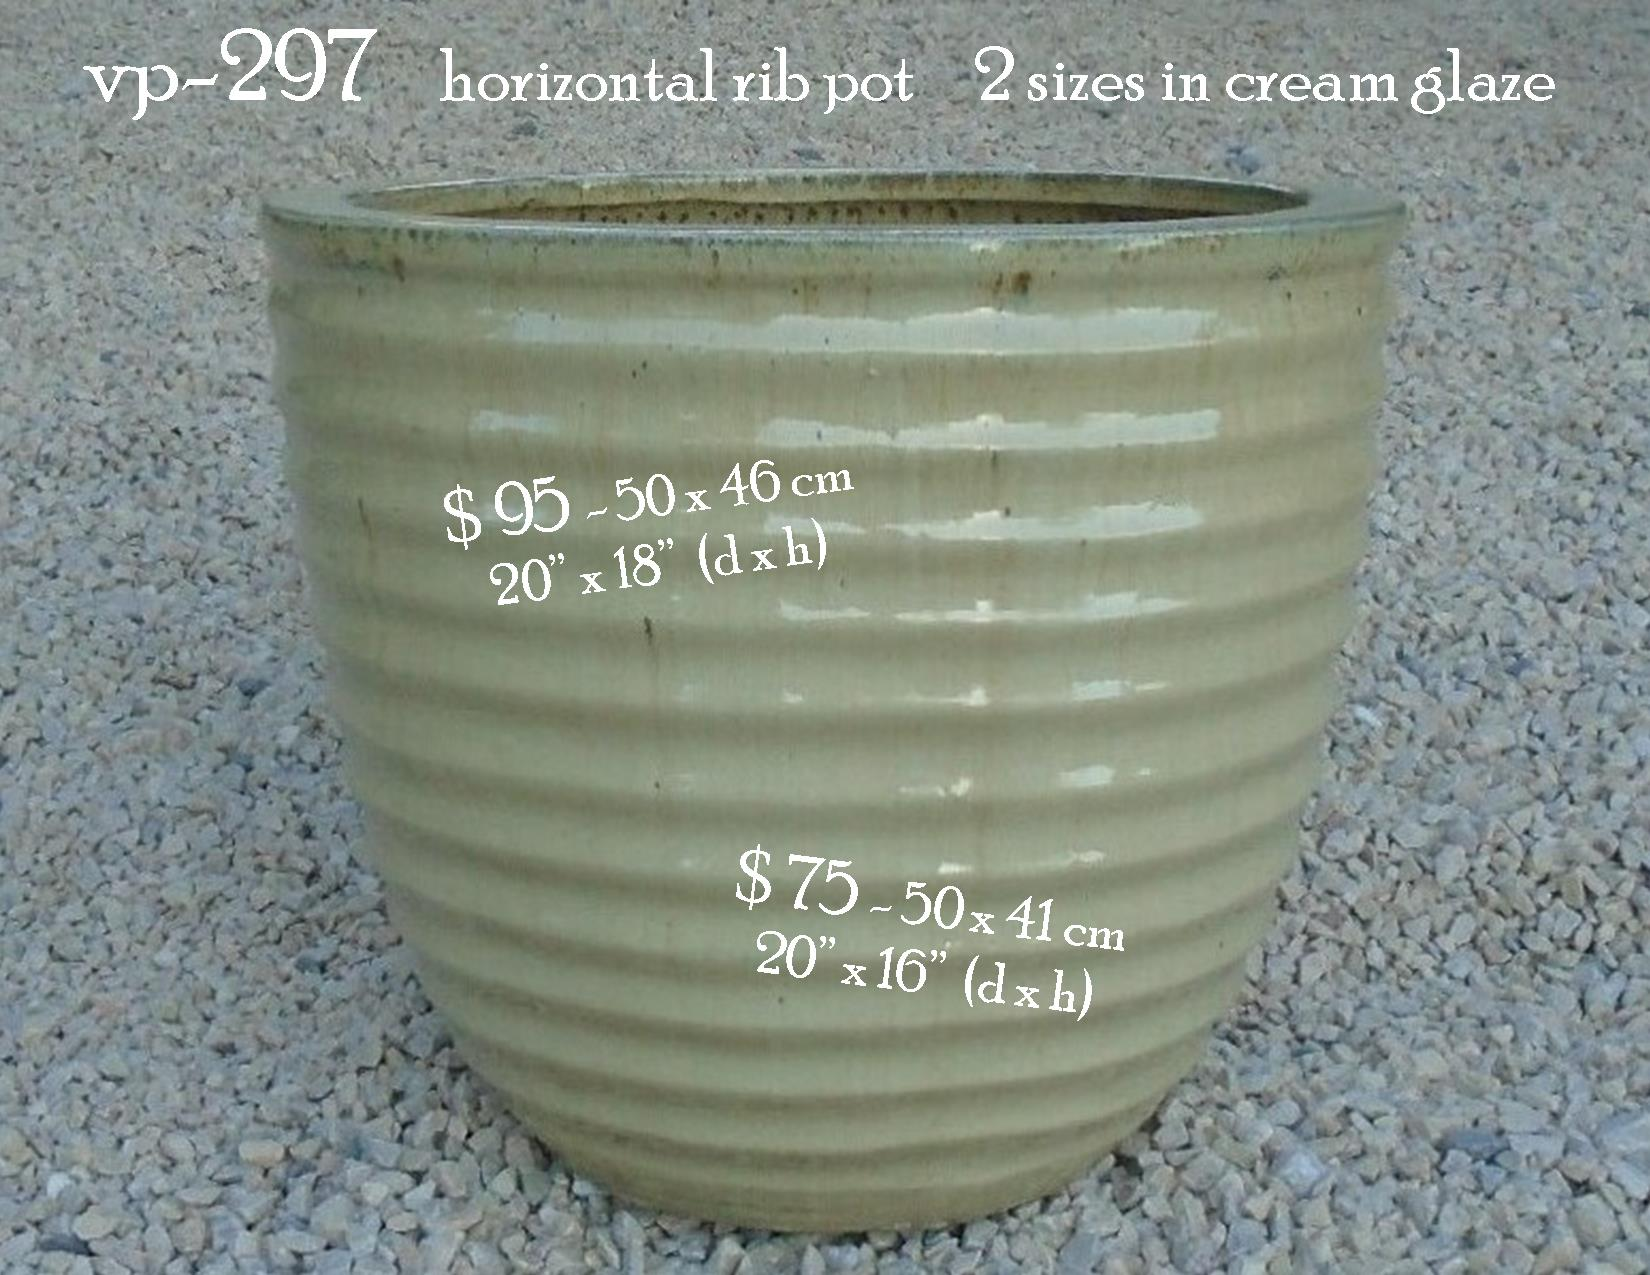 vp-297    horizontal rib pot